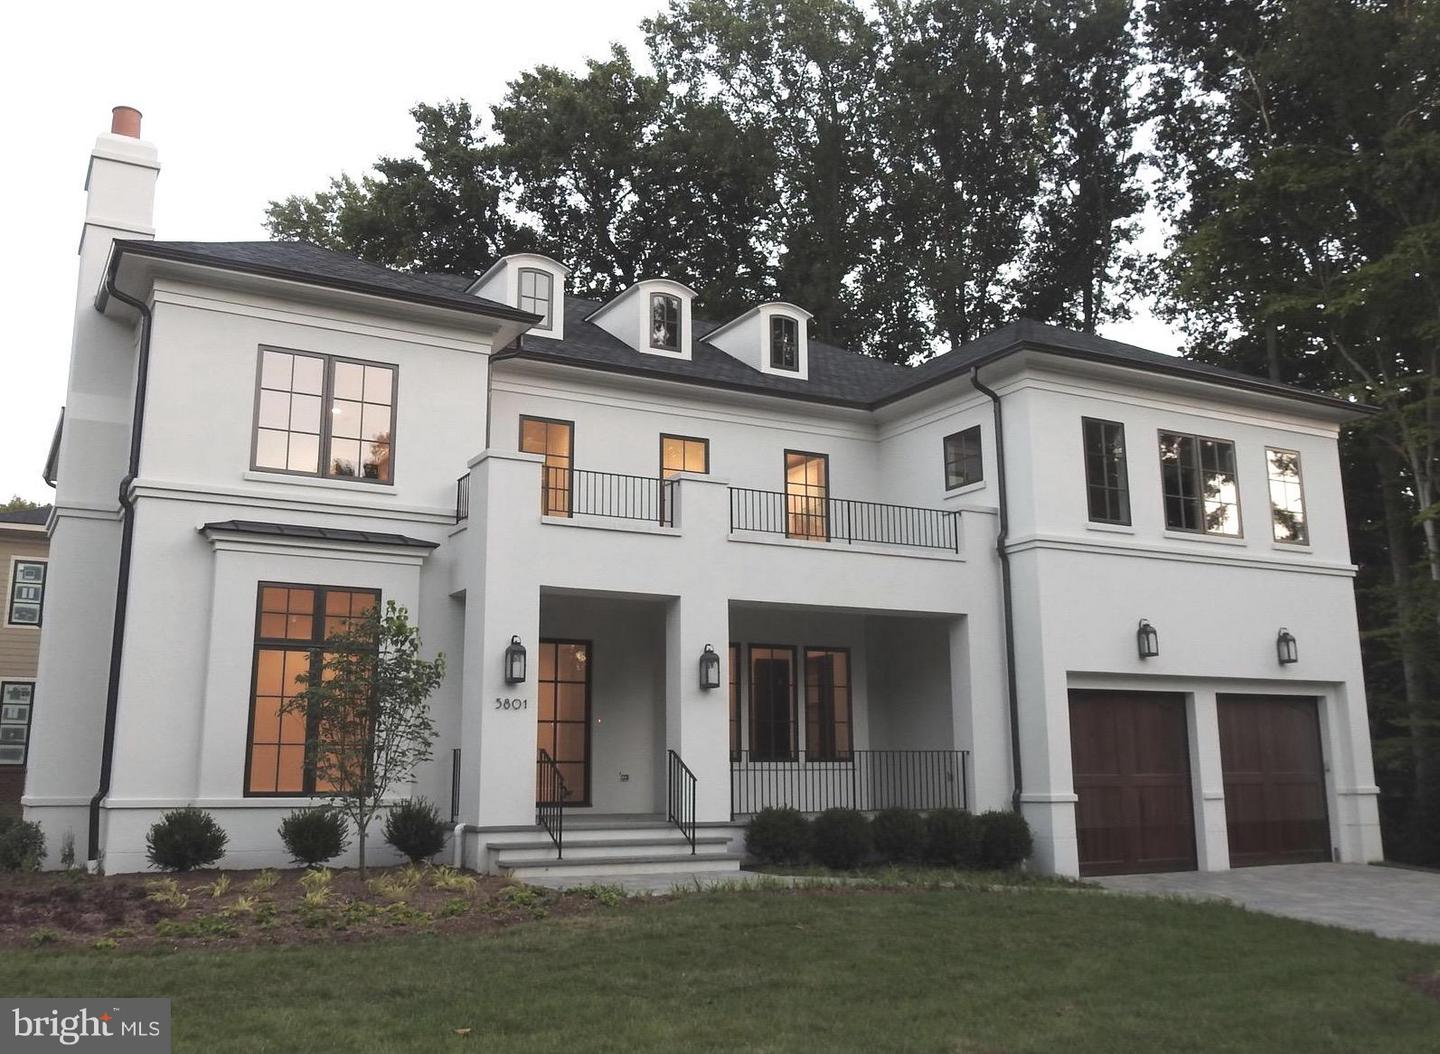 Single Family Home for Sale at Ridgeview Road Ridgeview Road Arlington, Virginia 22207 United States